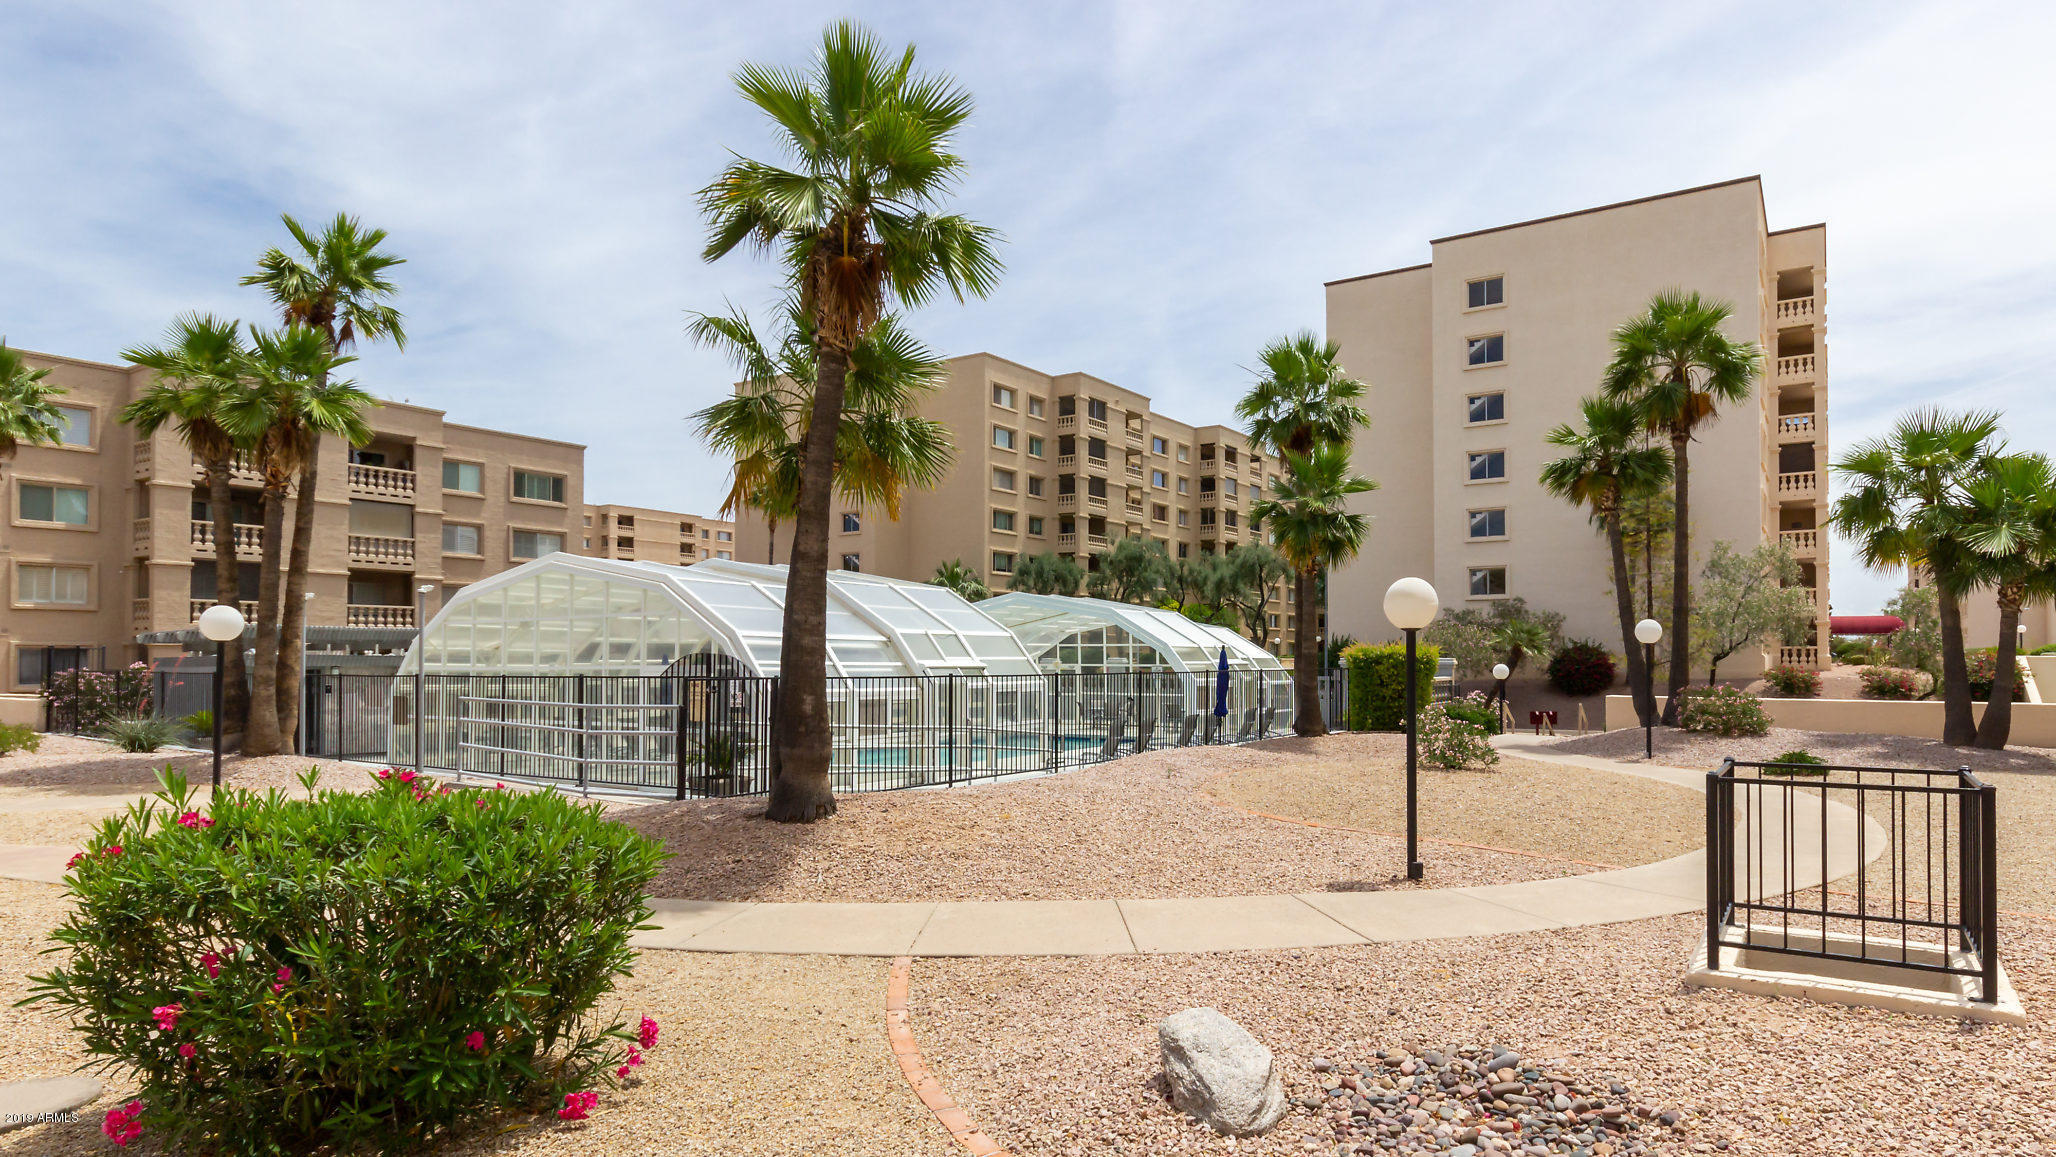 MLS 5927817 7960 E CAMELBACK Road Unit 203 Building 27, Scottsdale, AZ 85251 Scottsdale AZ Golf